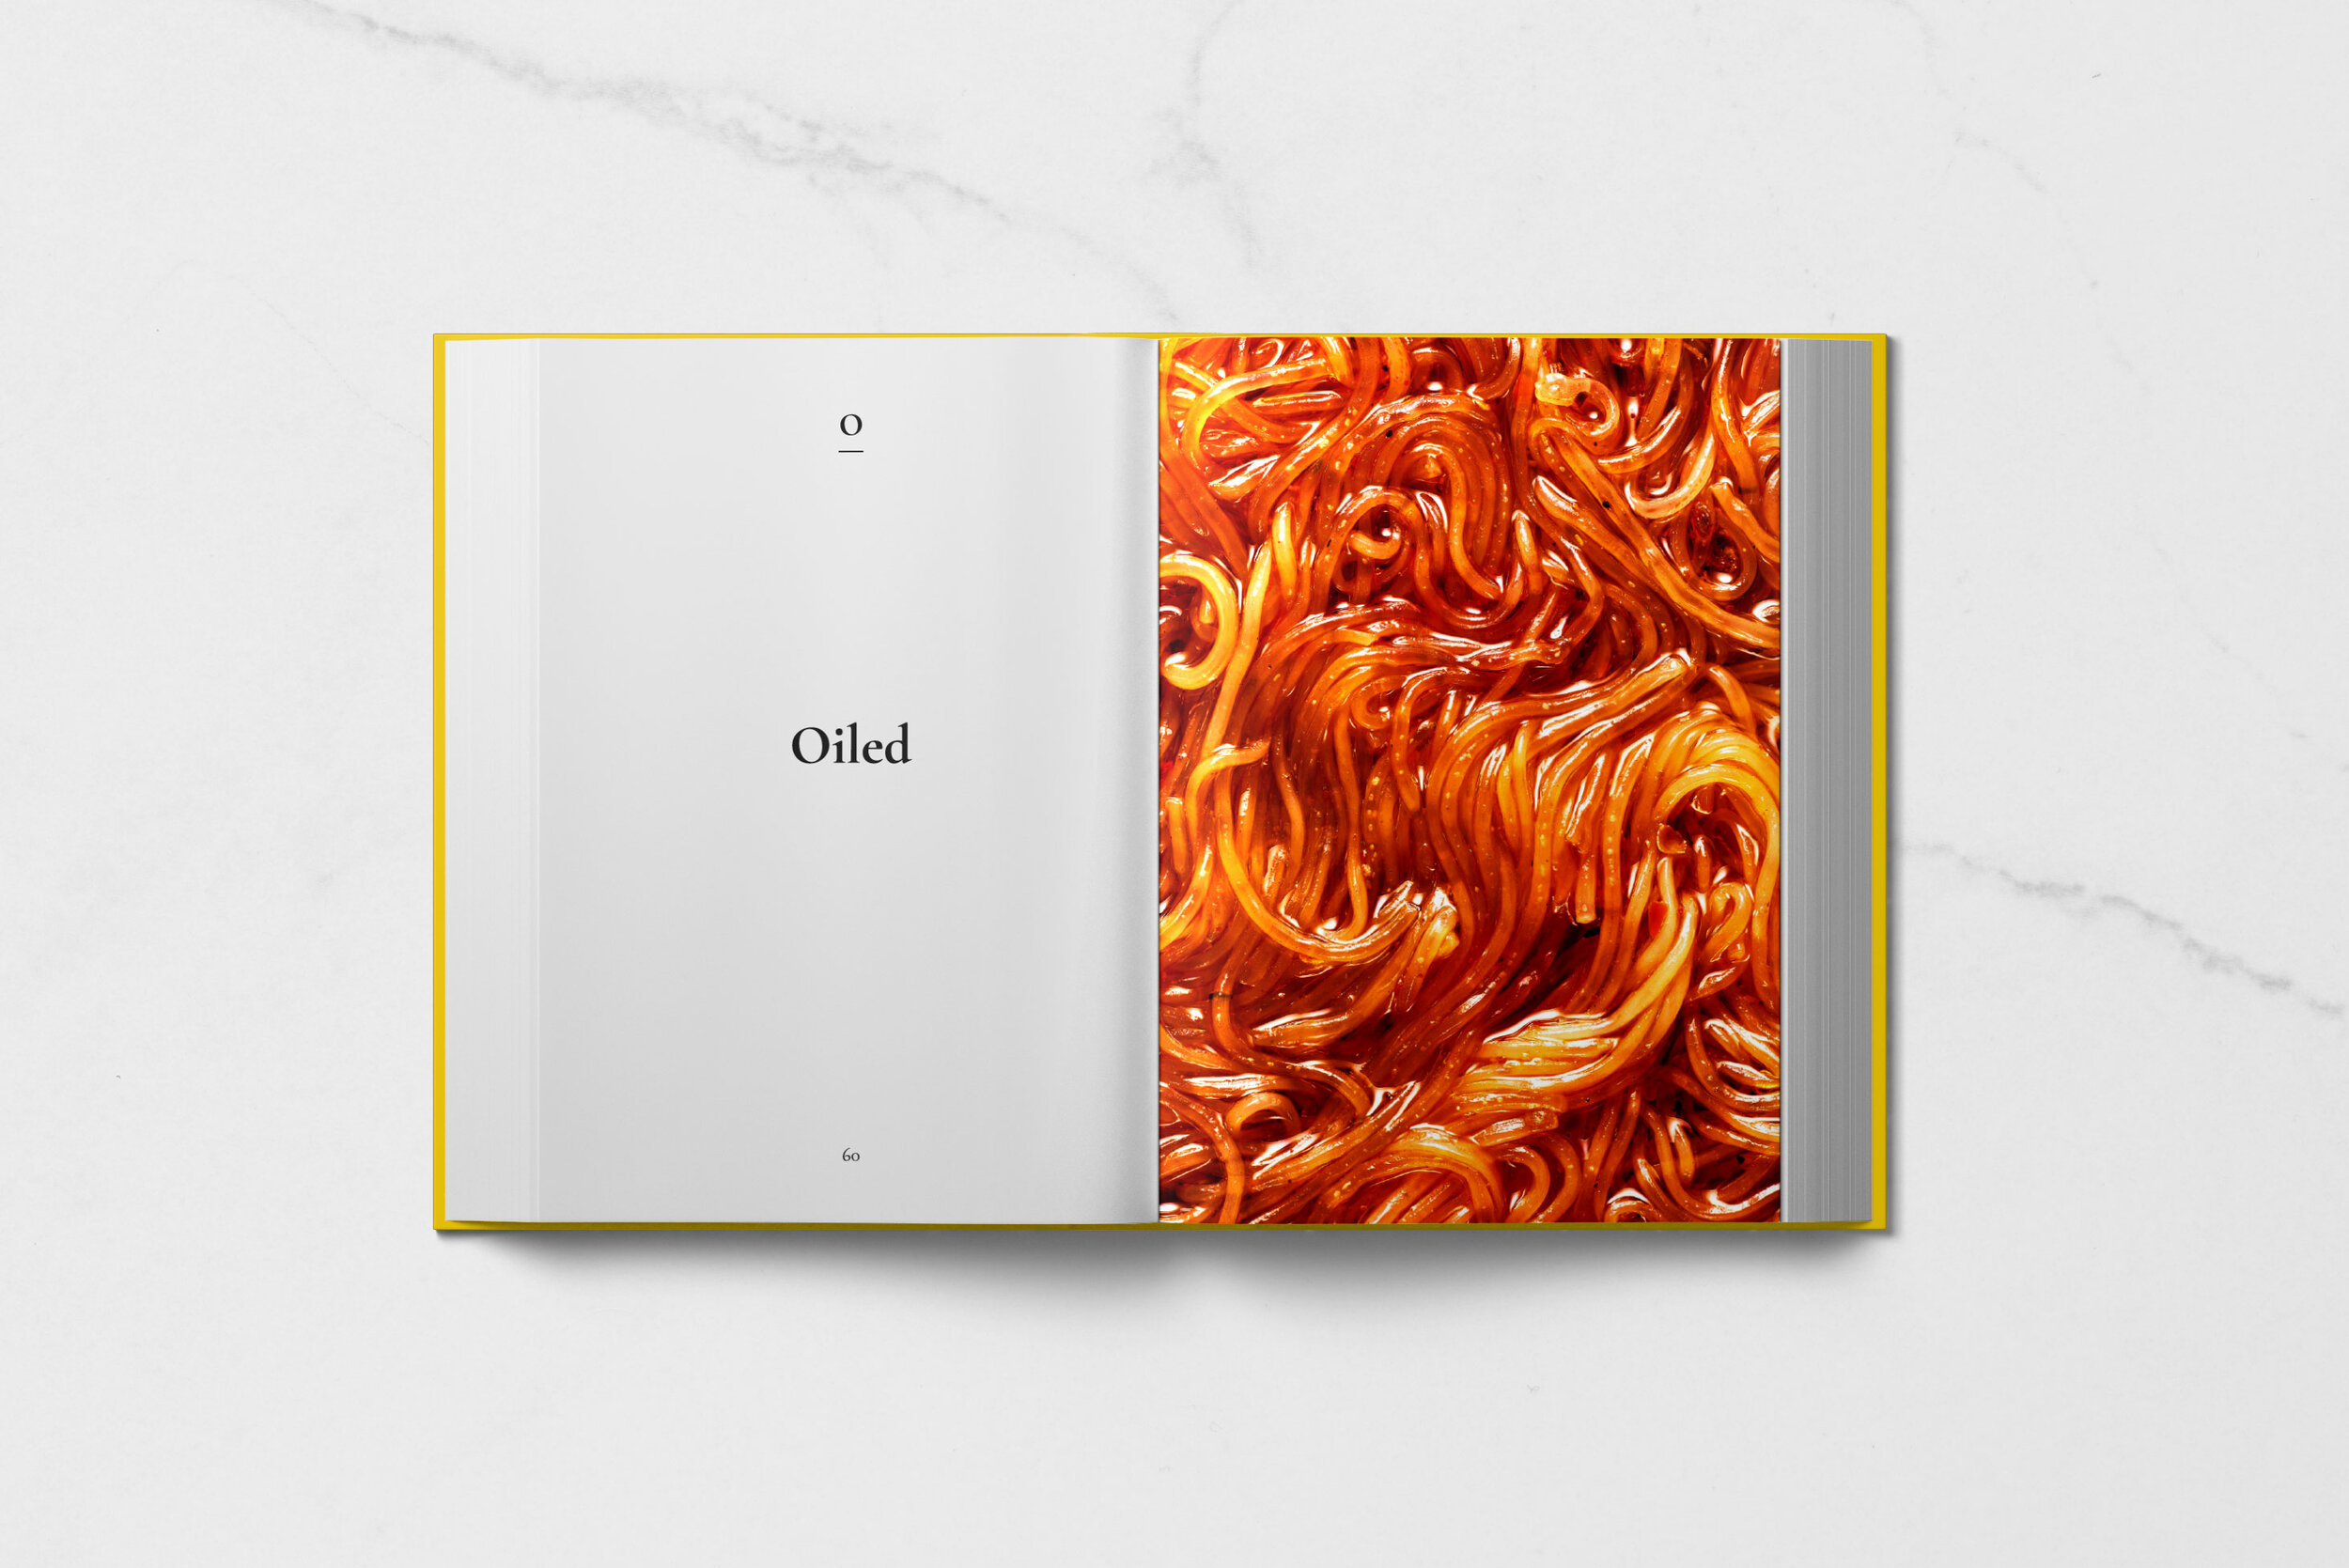 Lucy Ruth Hathaway The Food Styling Encyclopaedia, food photography art book, commercial food stylist, commercial food photography, food stylist tricks, food styling photography vocabulary, food artist, spaghetti food styling